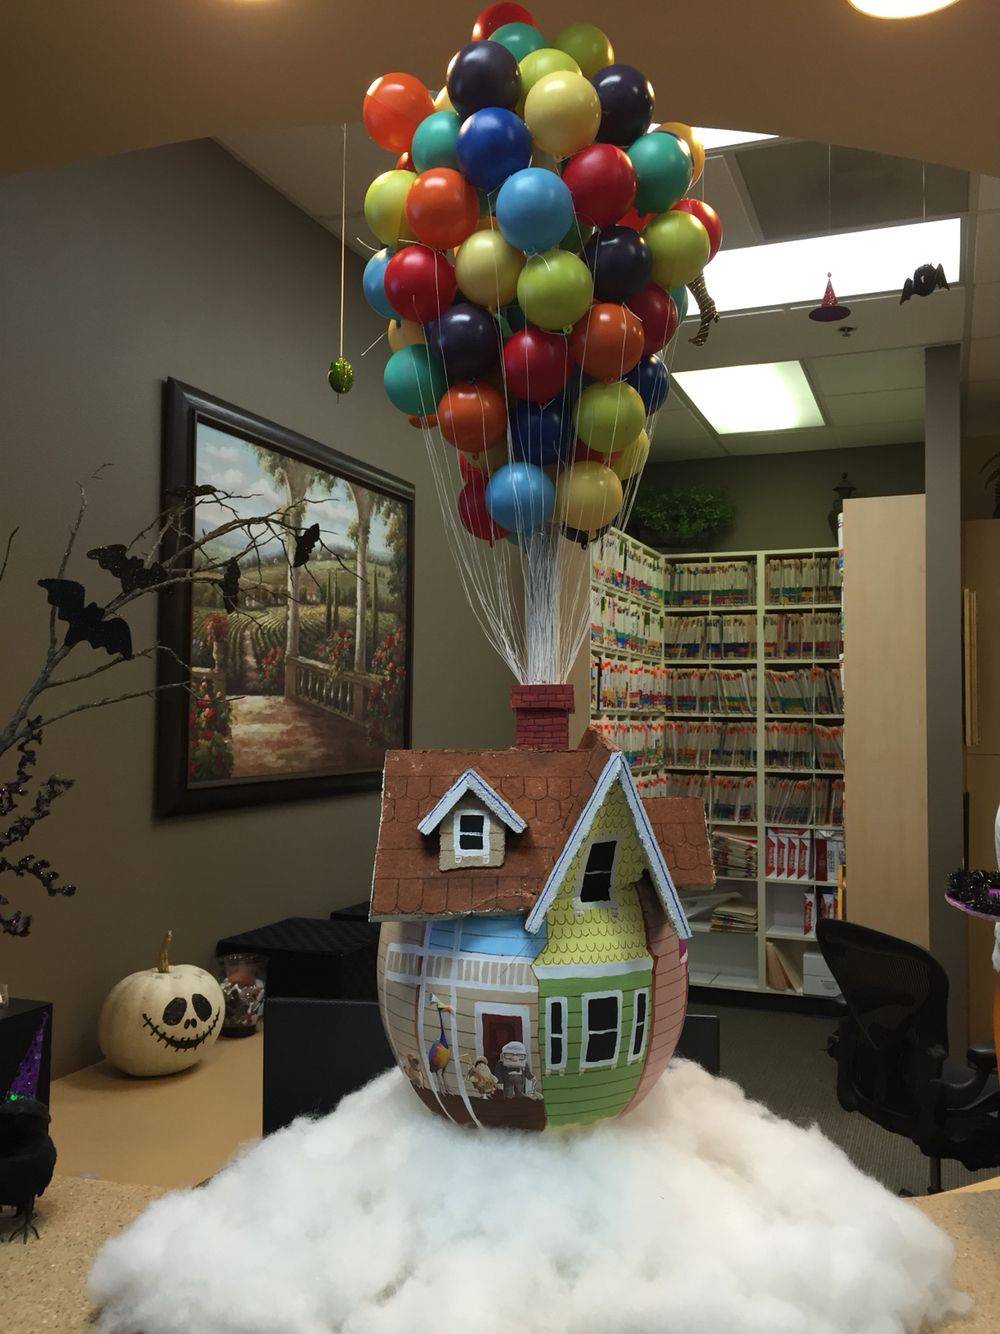 Tanasbourne Dental Care is ready for the pumpkin contest. We did the UP house theme.